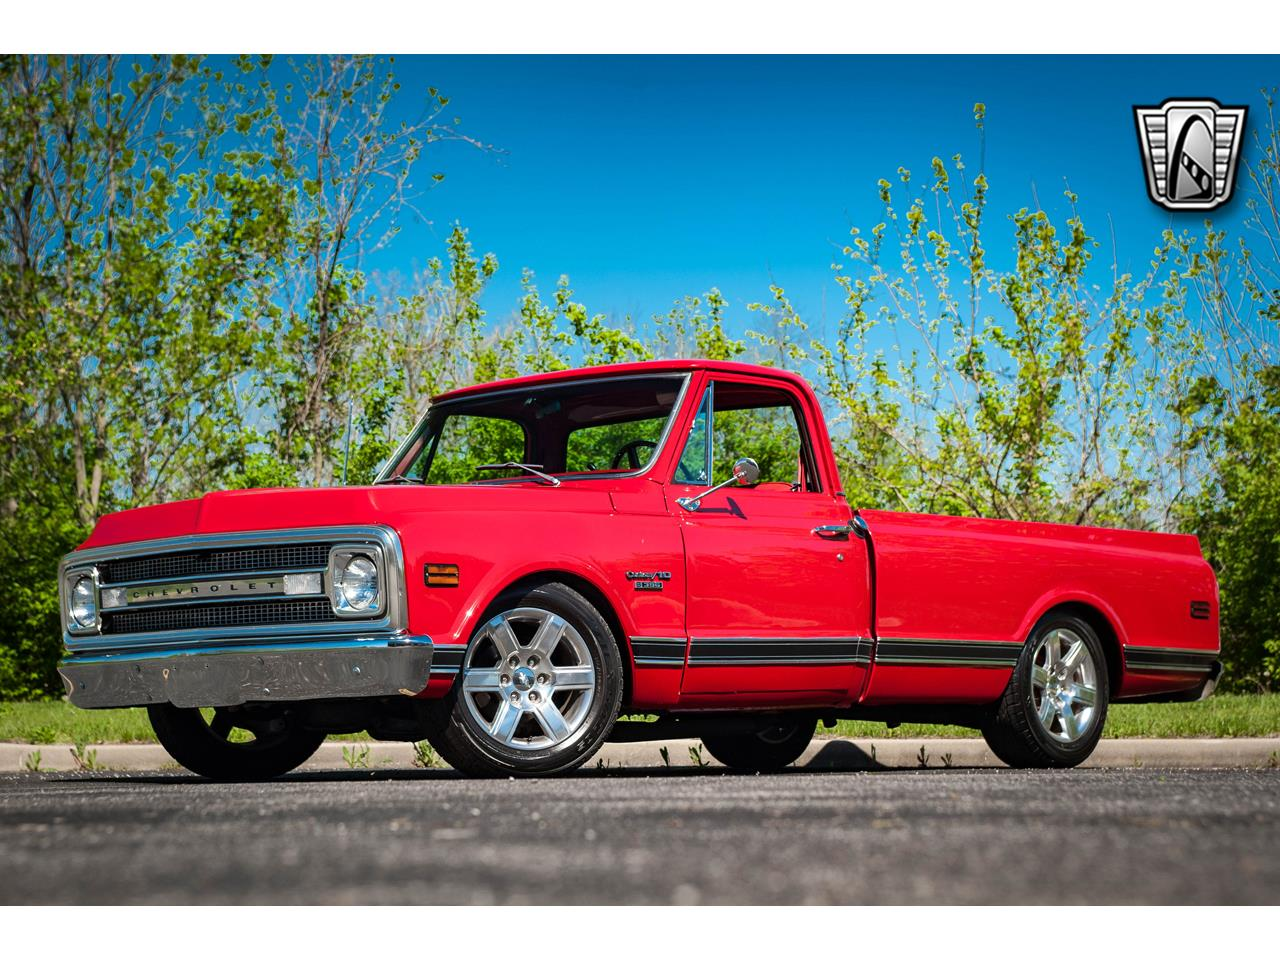 Large Picture of '69 C10 located in Illinois - $44,500.00 Offered by Gateway Classic Cars - St. Louis - QB8I